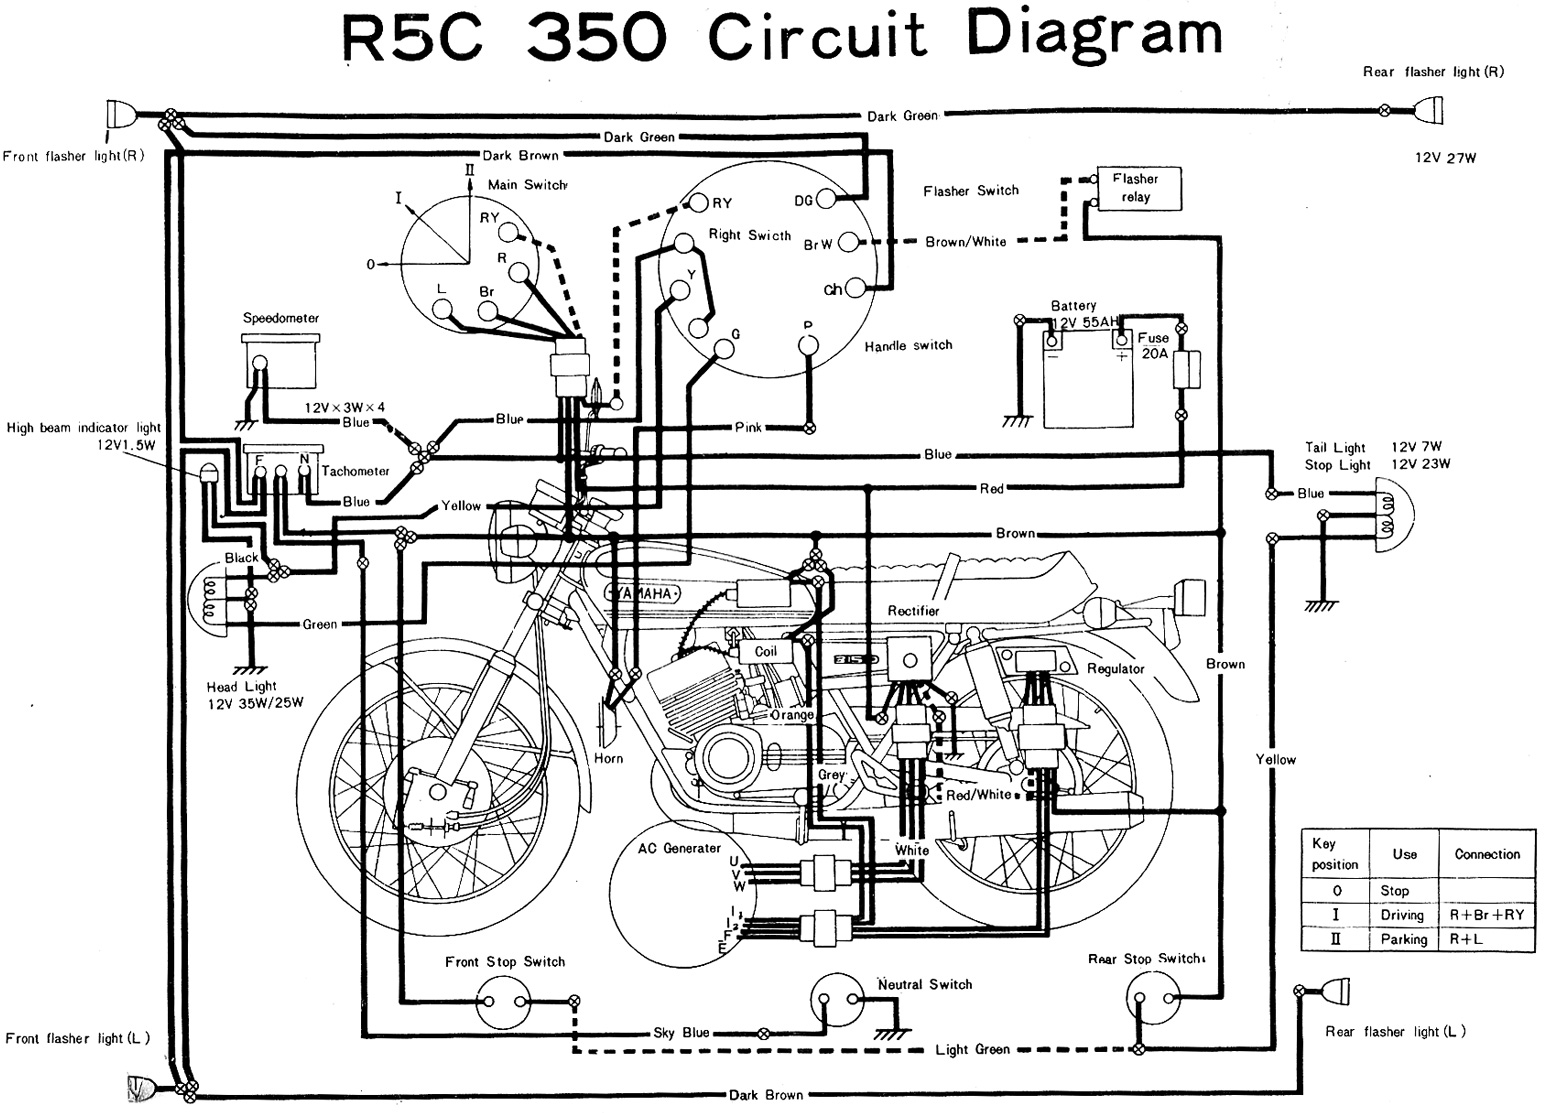 Yamaha R5C 350 Electrical Wiring Diagram1 motorcycle wiring diagrams honda motorcycle wiring diagrams pdf at n-0.co